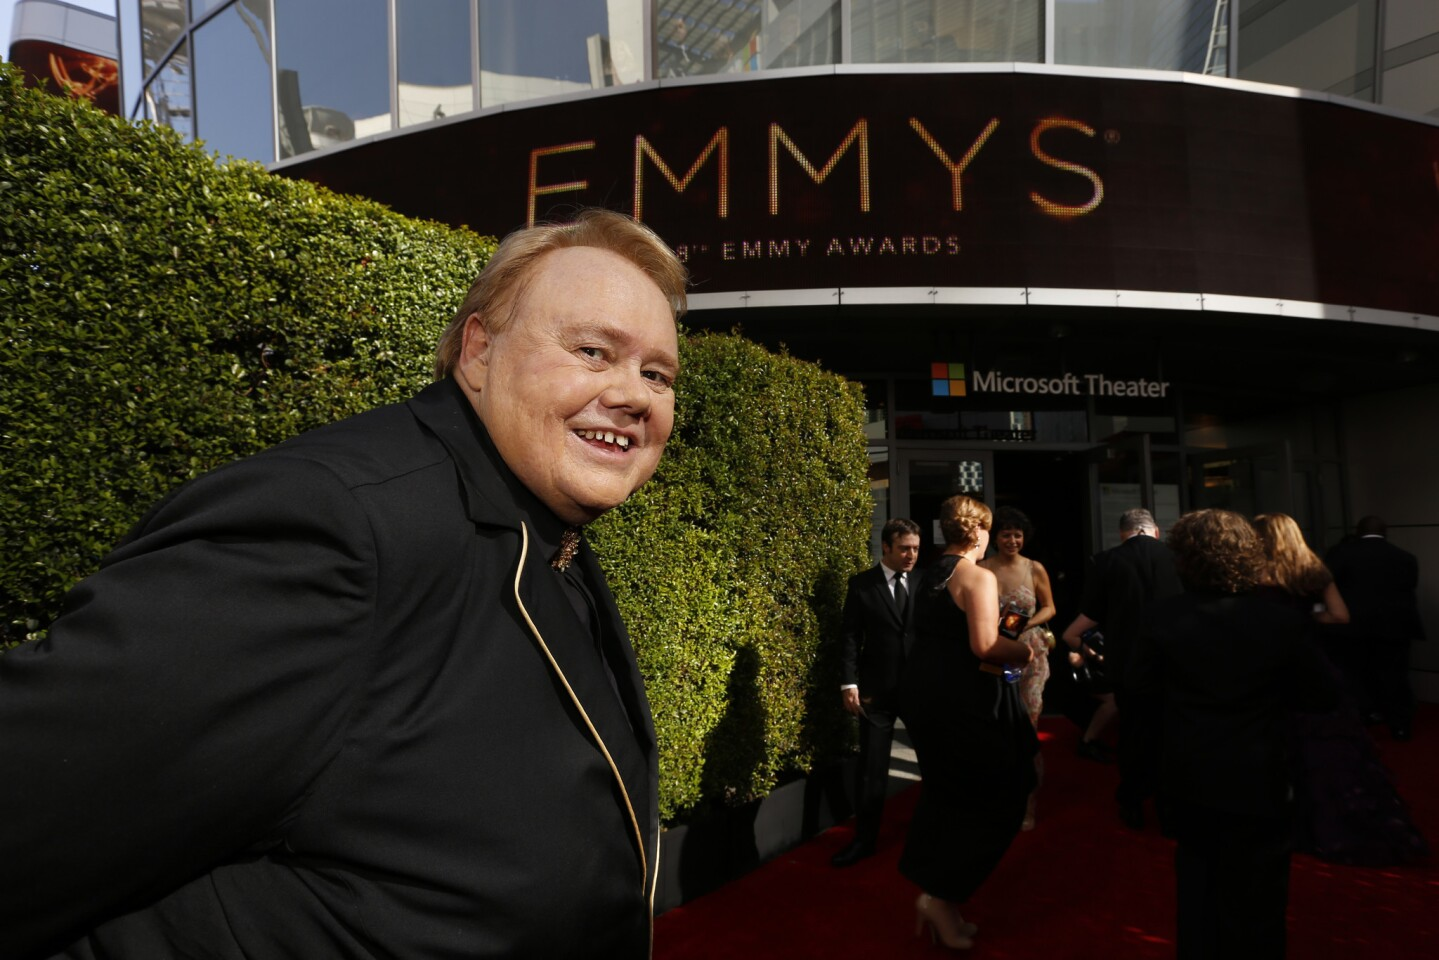 Louie Anderson gets ready to enter the Microsoft Theater.